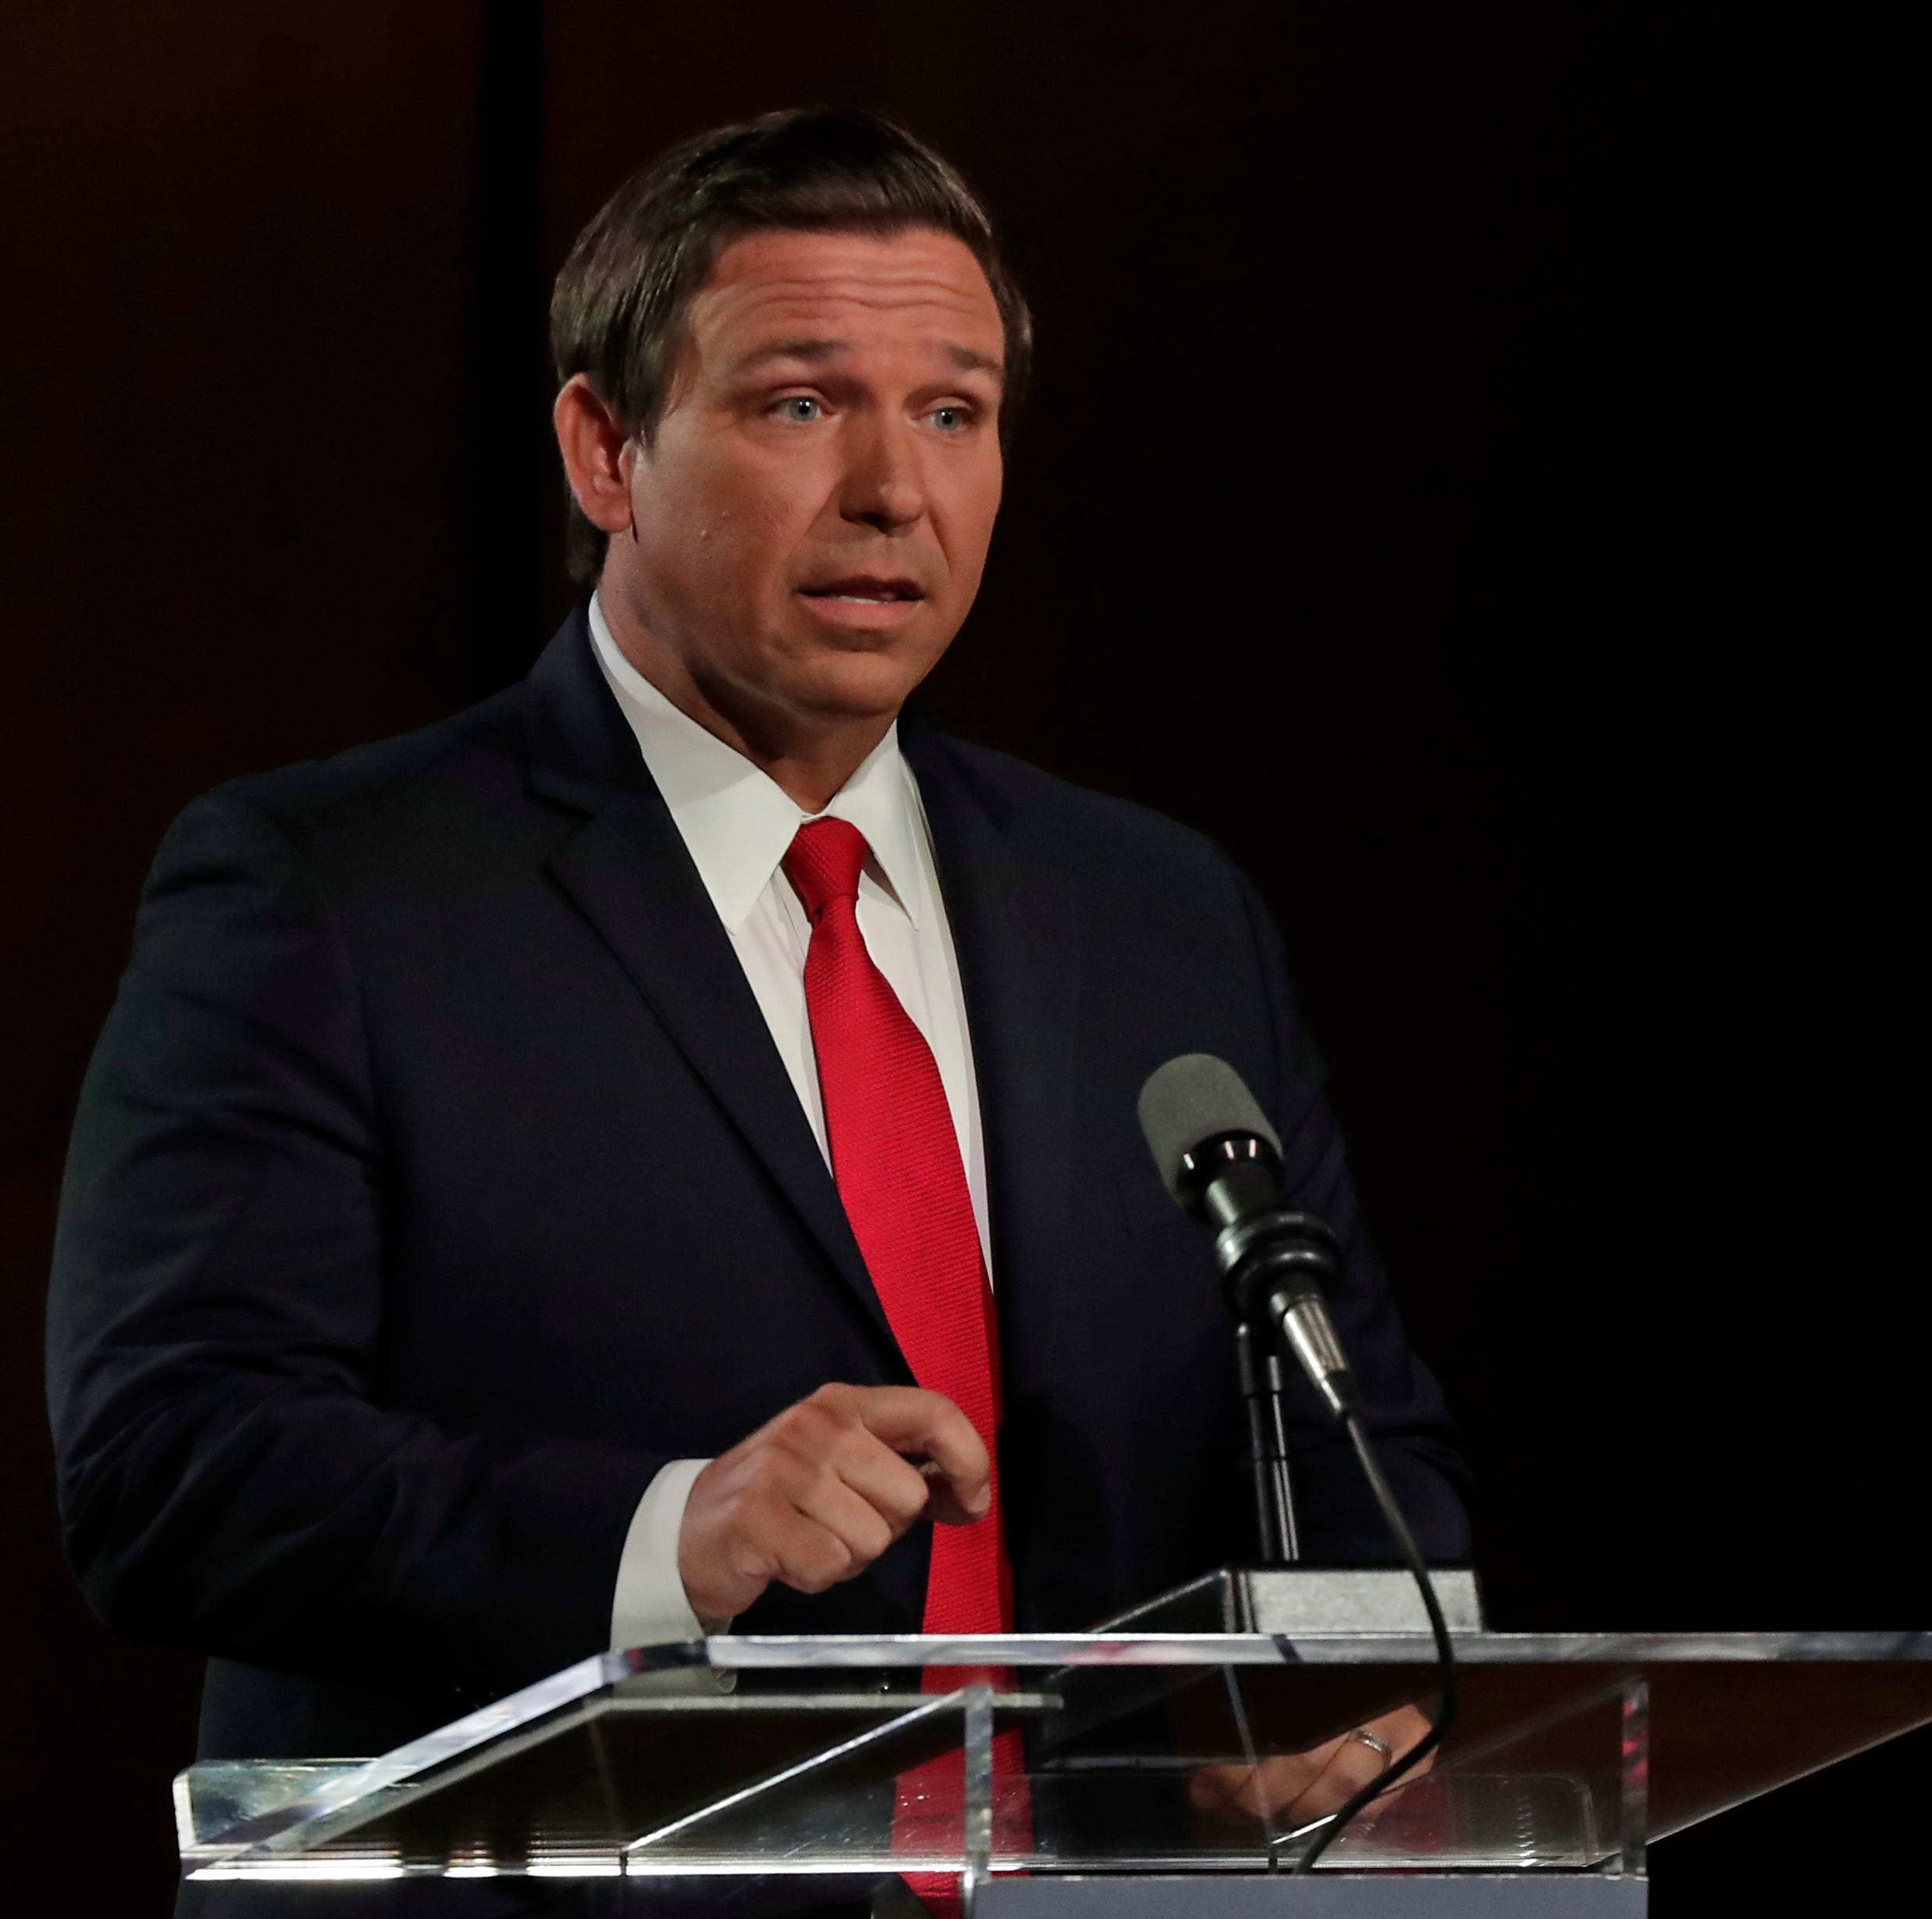 GOP's Ron DeSantis spoke to group whose founder says devout Muslims can't be loyal Americans